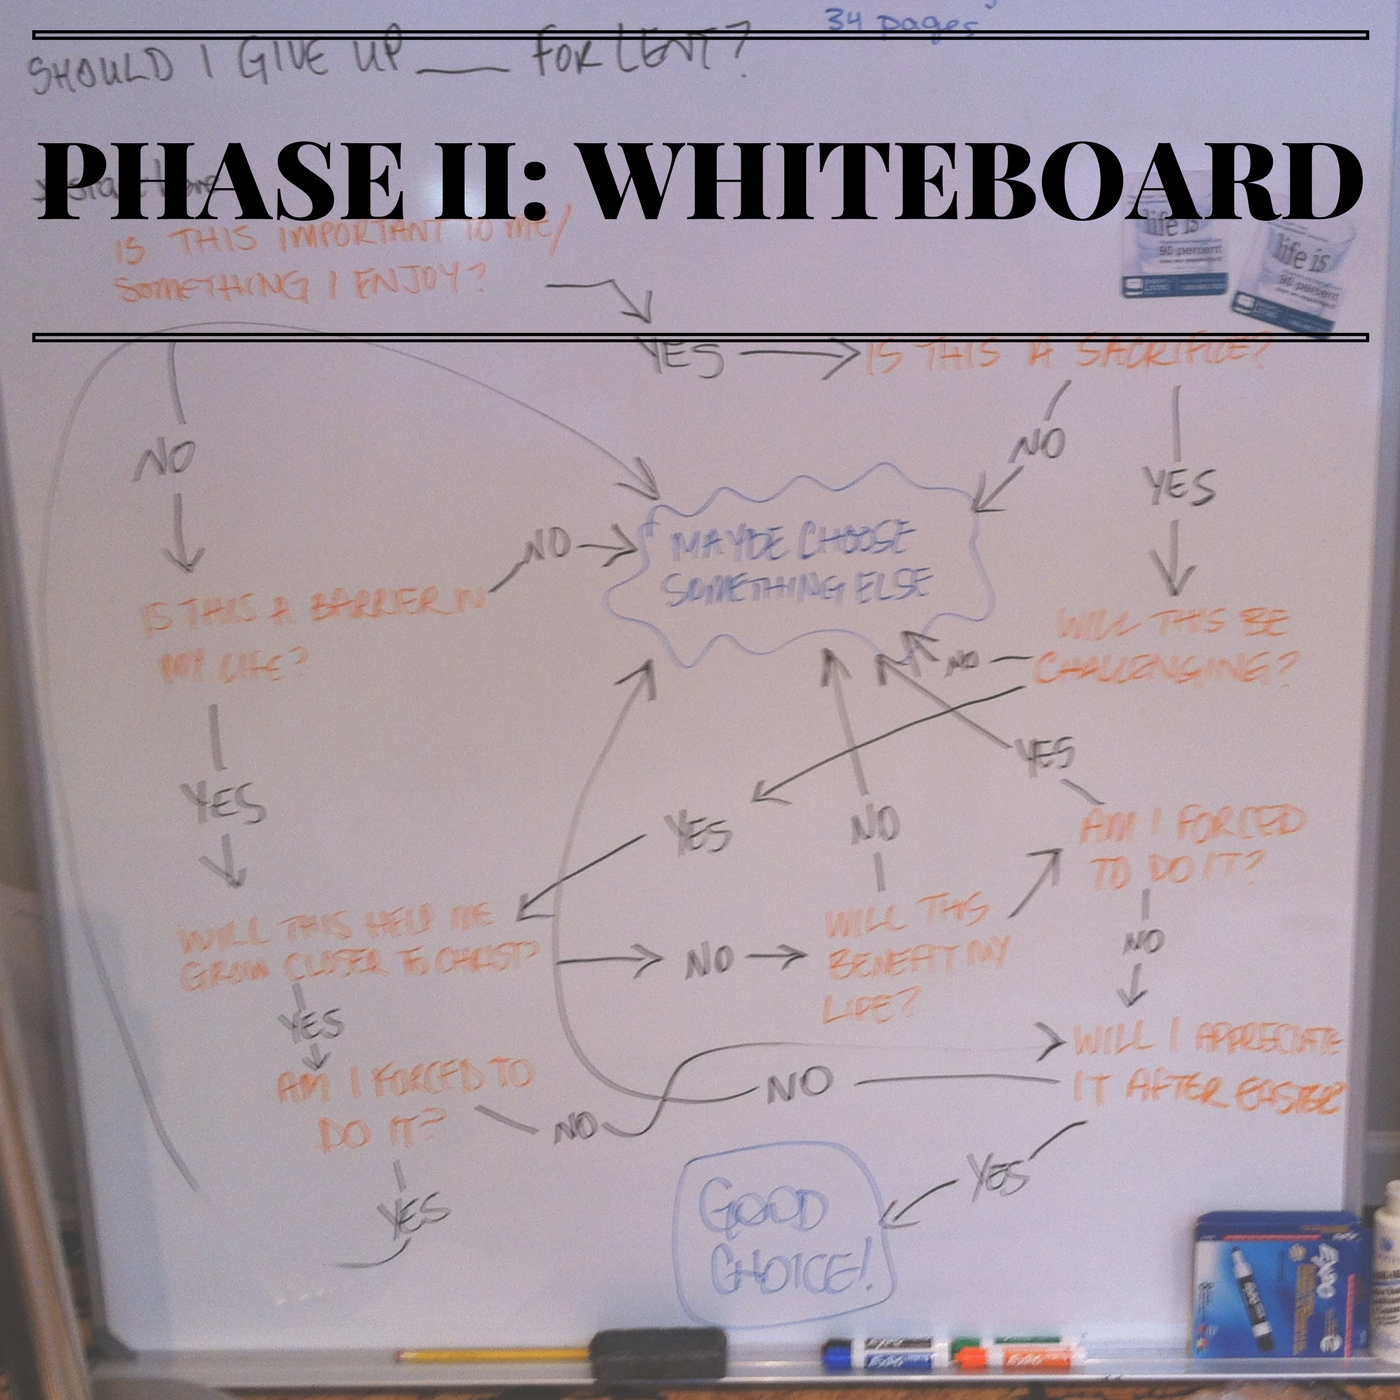 Whiteboard Flowchart